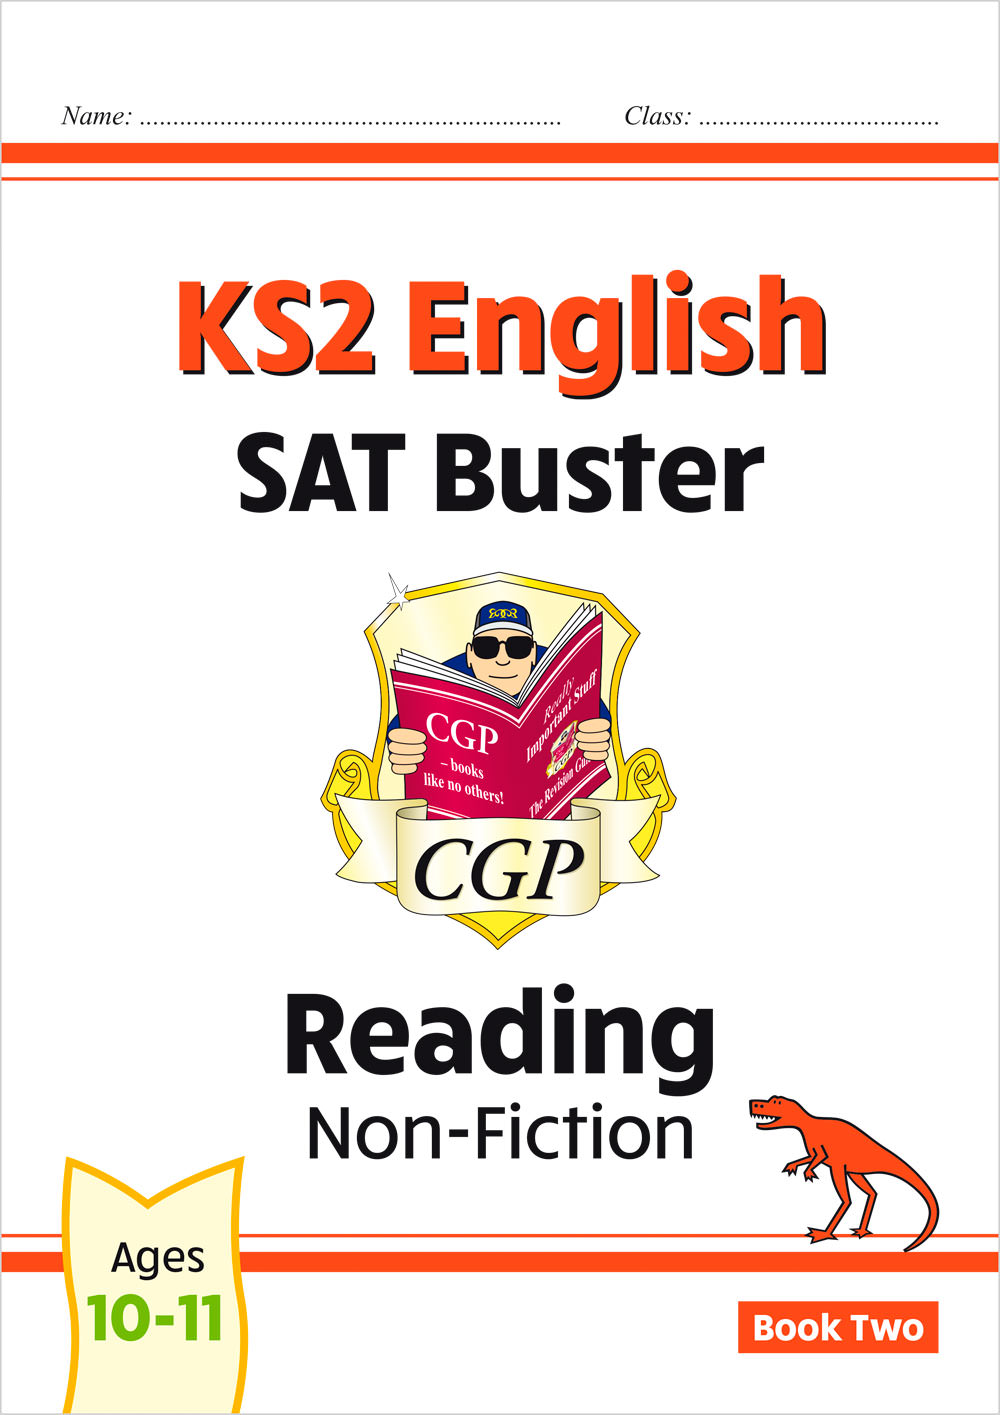 E6FRN222 - New KS2 English Reading SAT Buster: Non-Fiction - Book 2 (for the 2021 tests)